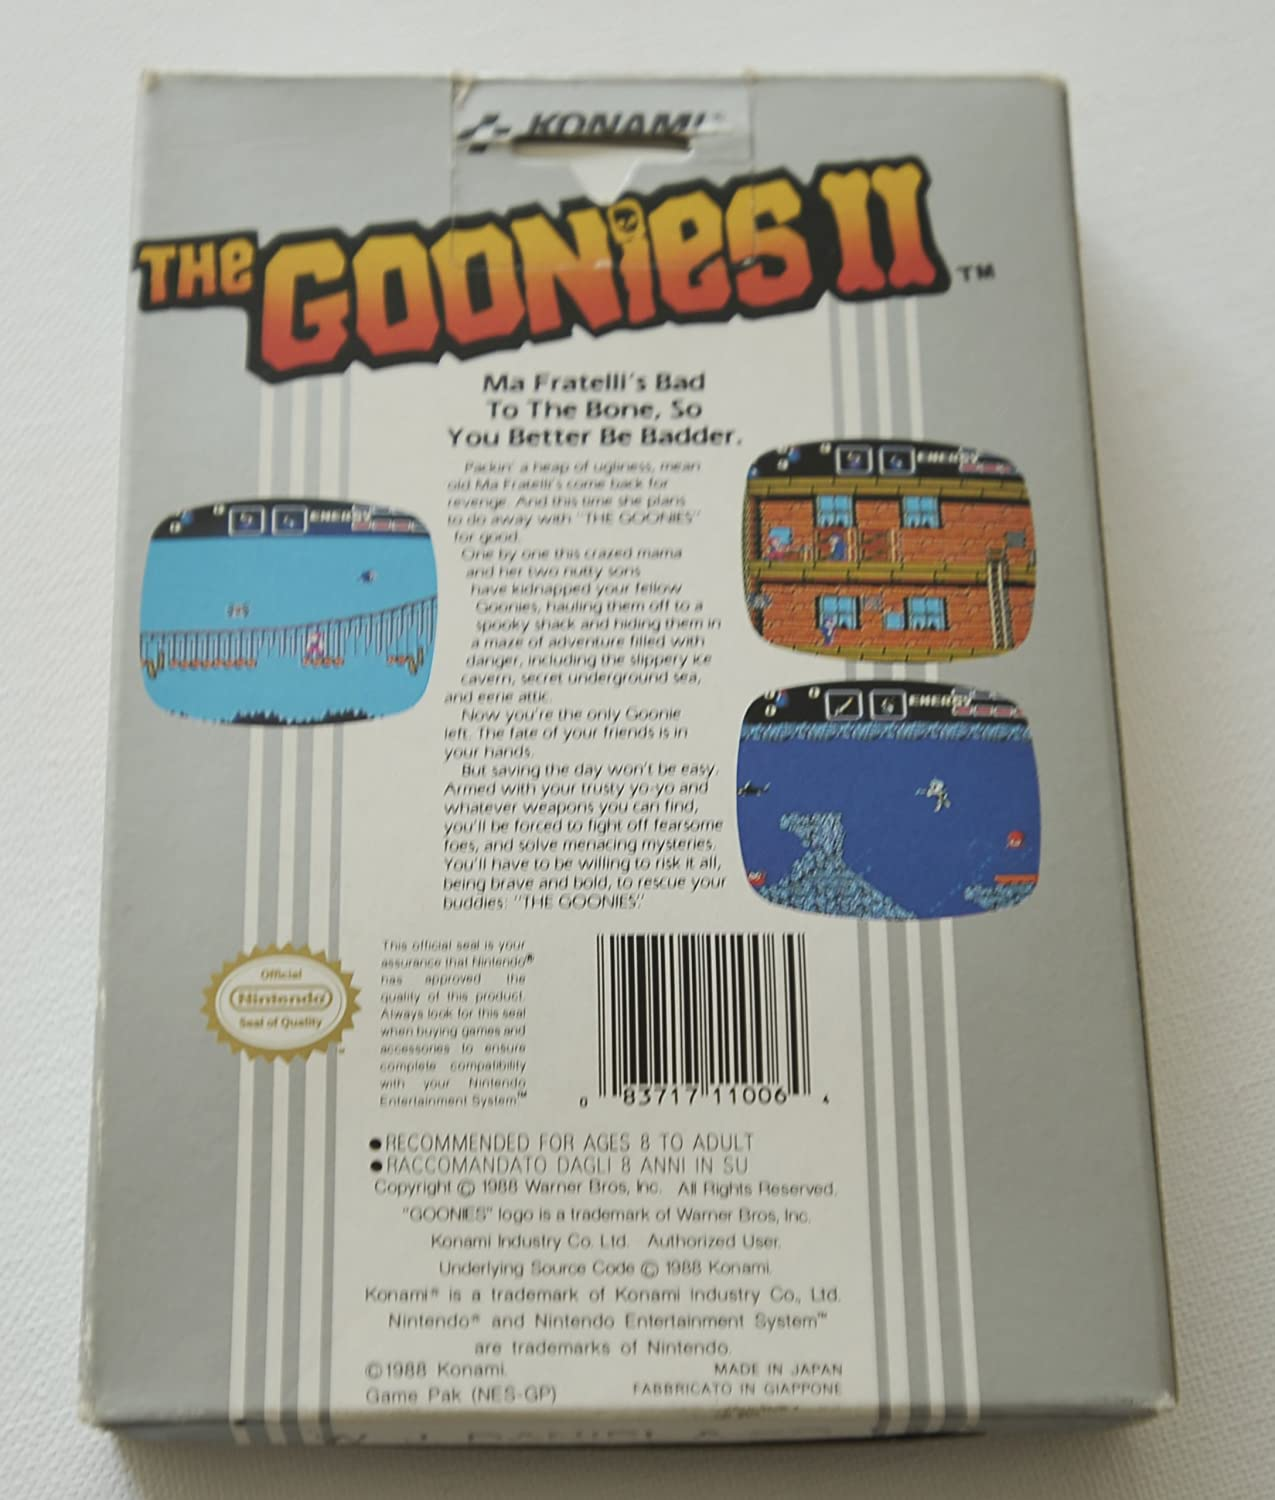 The Goonies 2 - NES - PAL: Amazon co uk: PC & Video Games